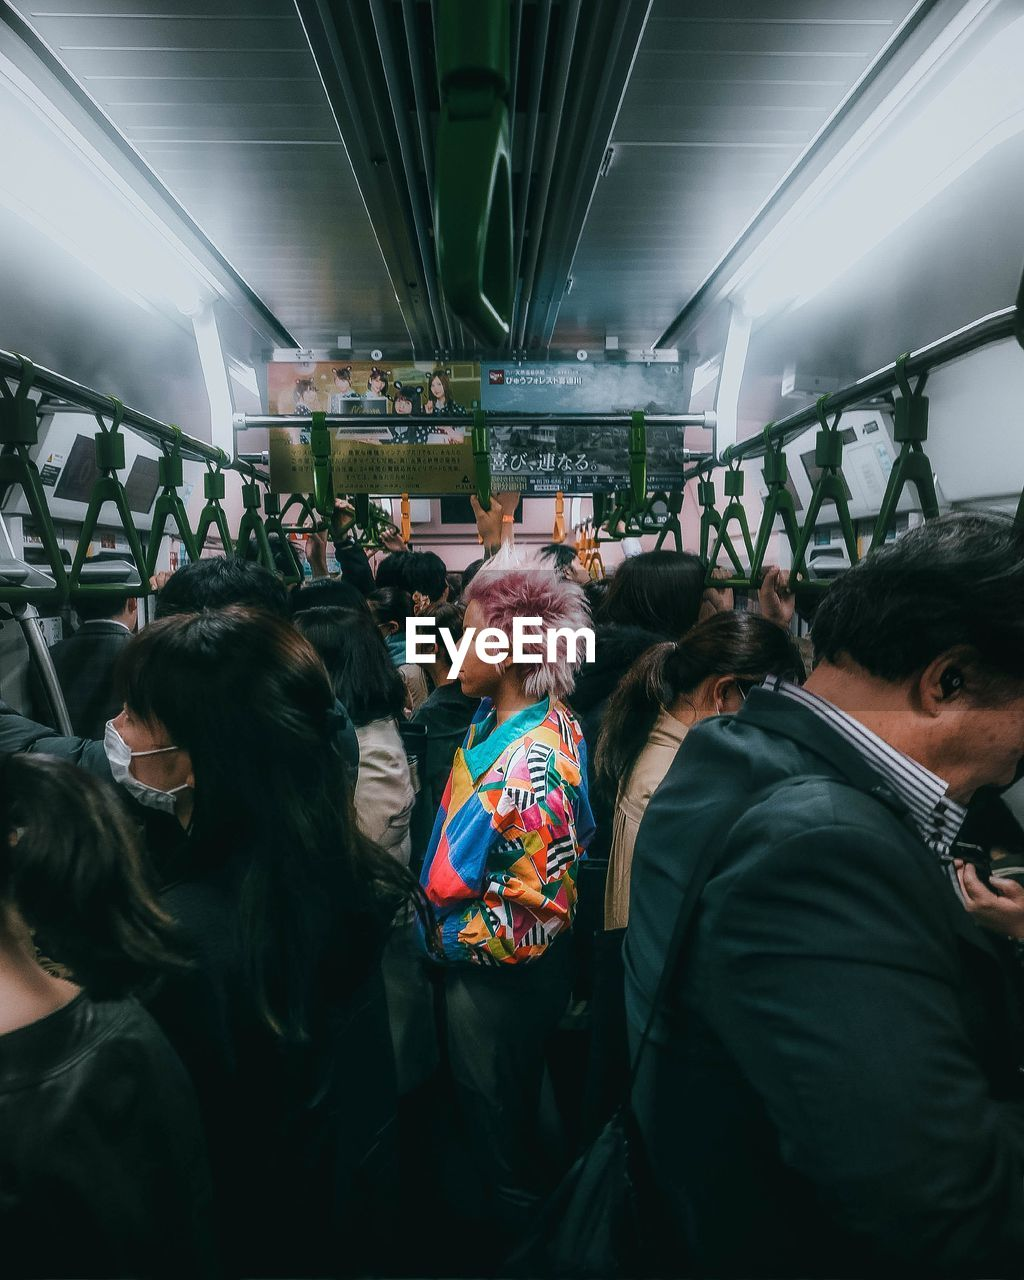 group of people, real people, large group of people, women, crowd, adult, lifestyles, men, leisure activity, rear view, indoors, public transportation, transportation, architecture, togetherness, casual clothing, standing, illuminated, ceiling